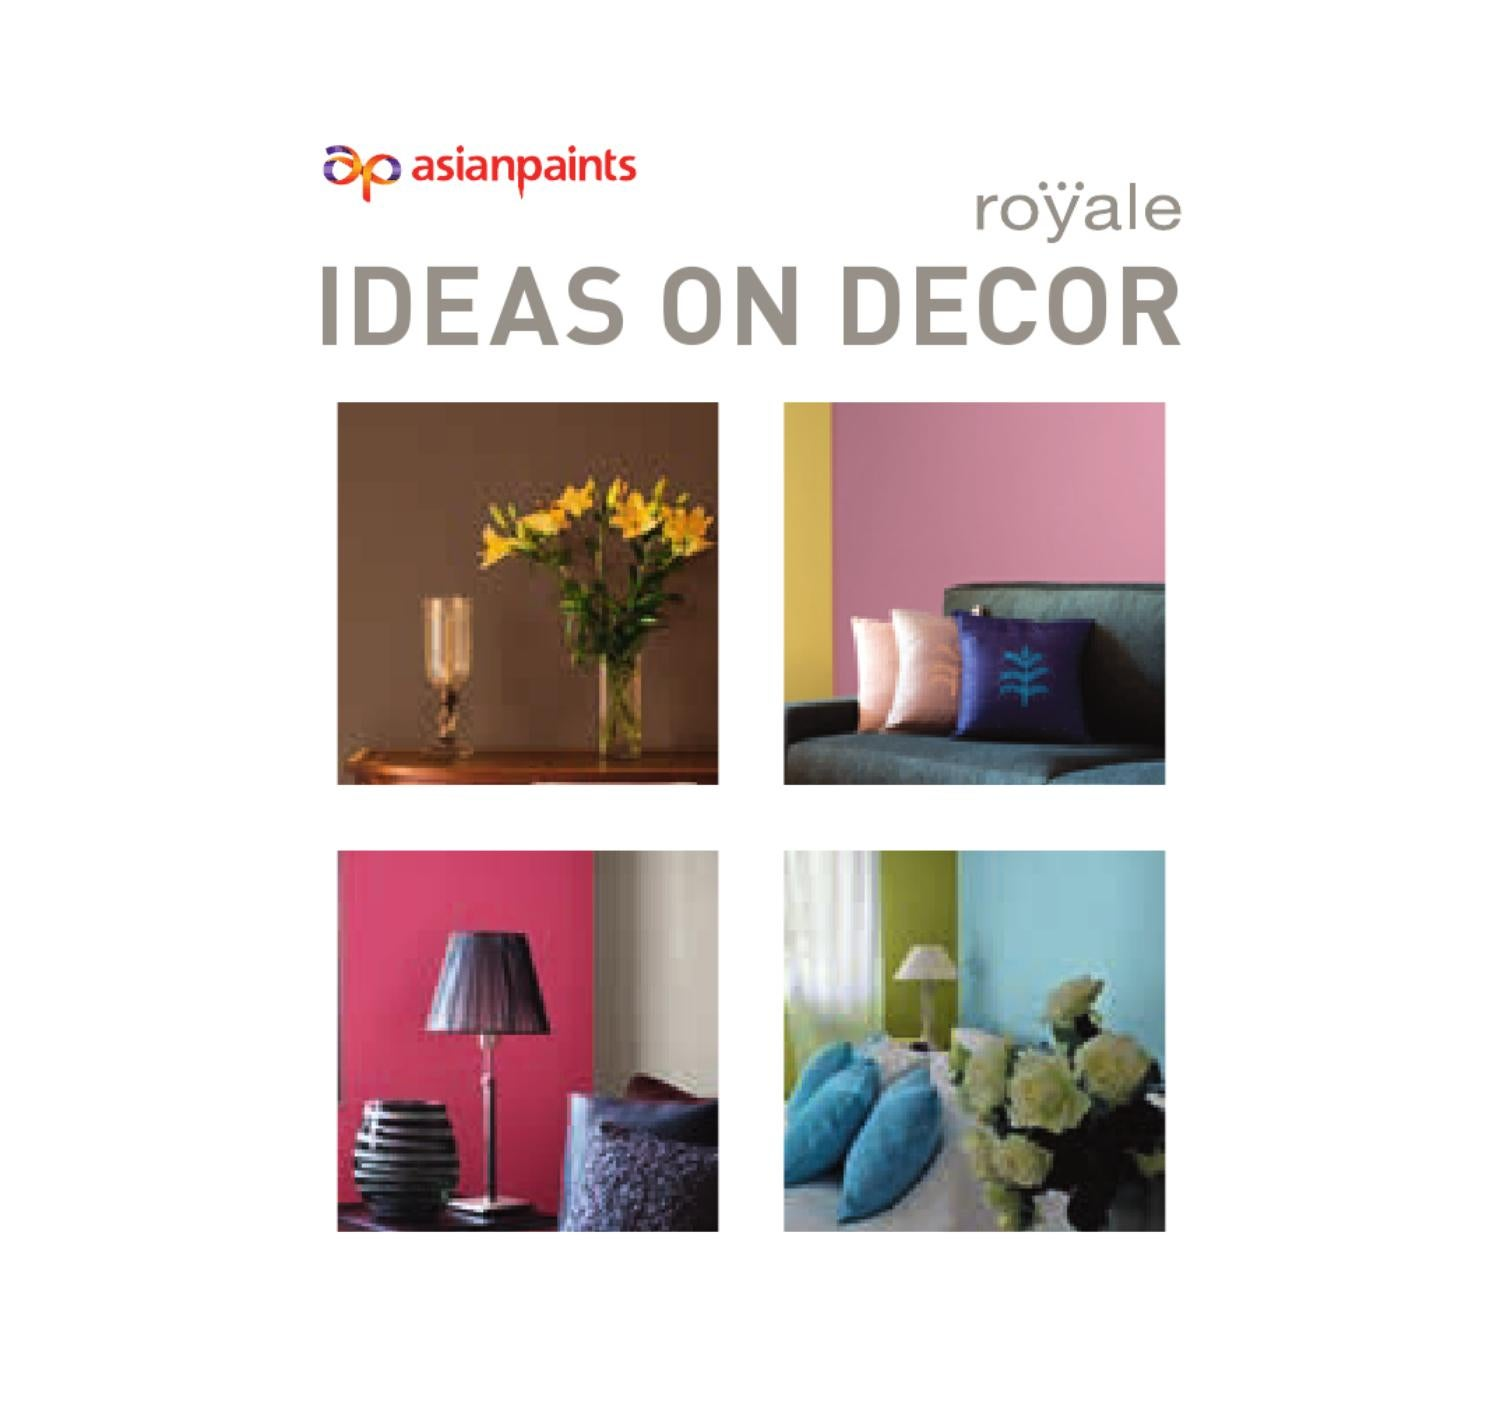 ideas on decor book webasian paints limited - issuu